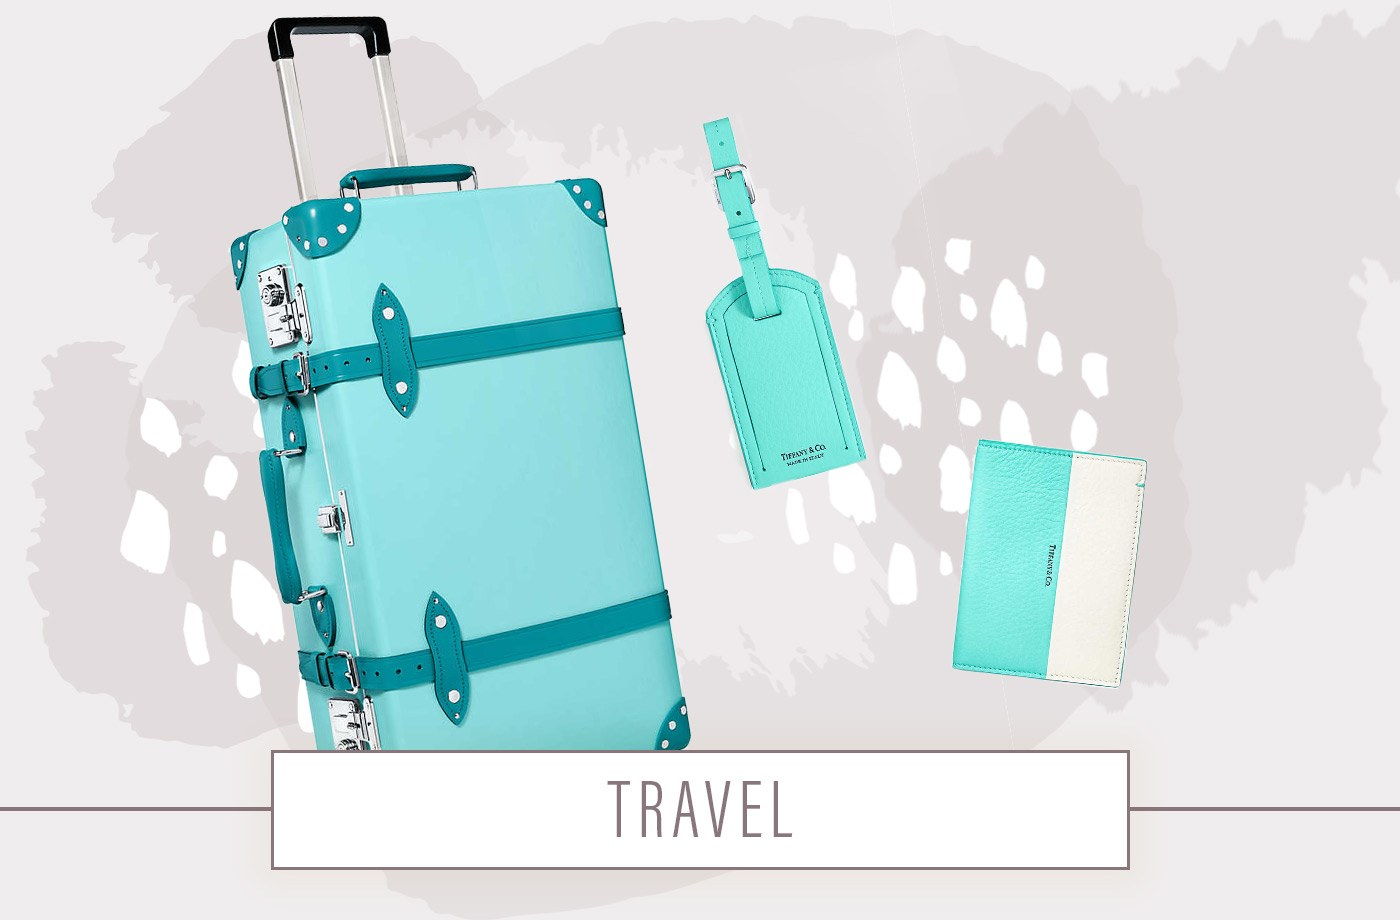 Tiffany & Co travel gifts for graduates